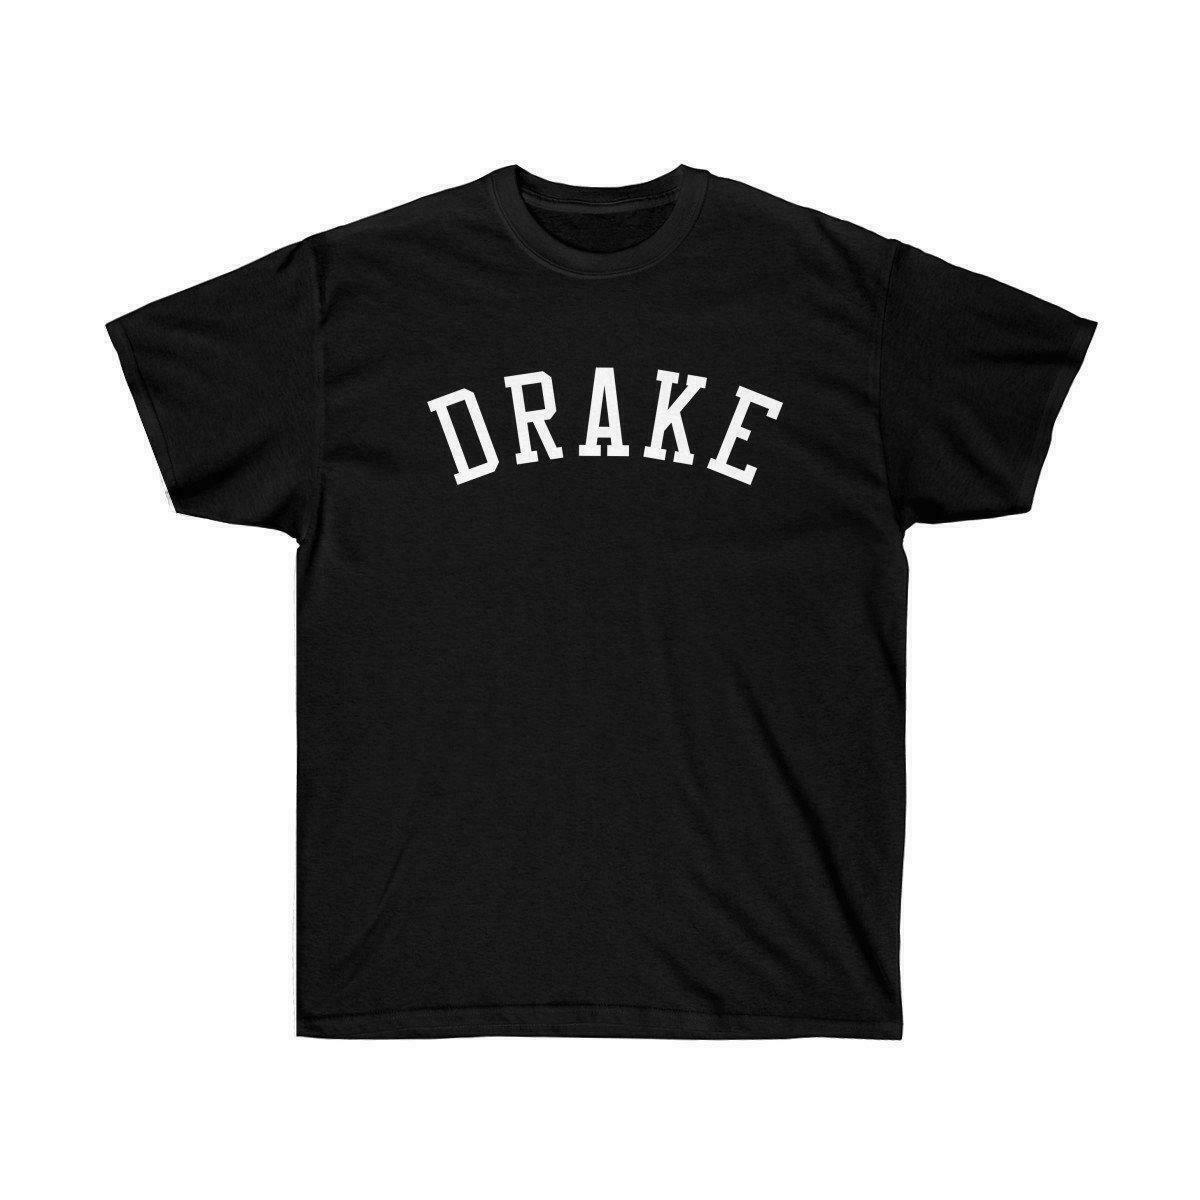 Drake Name Tee Sleeve T Shirt Summer Men Tee Tops Clothing Round Neck Best Selling Male Natural Cotton Shirt Top Tee image